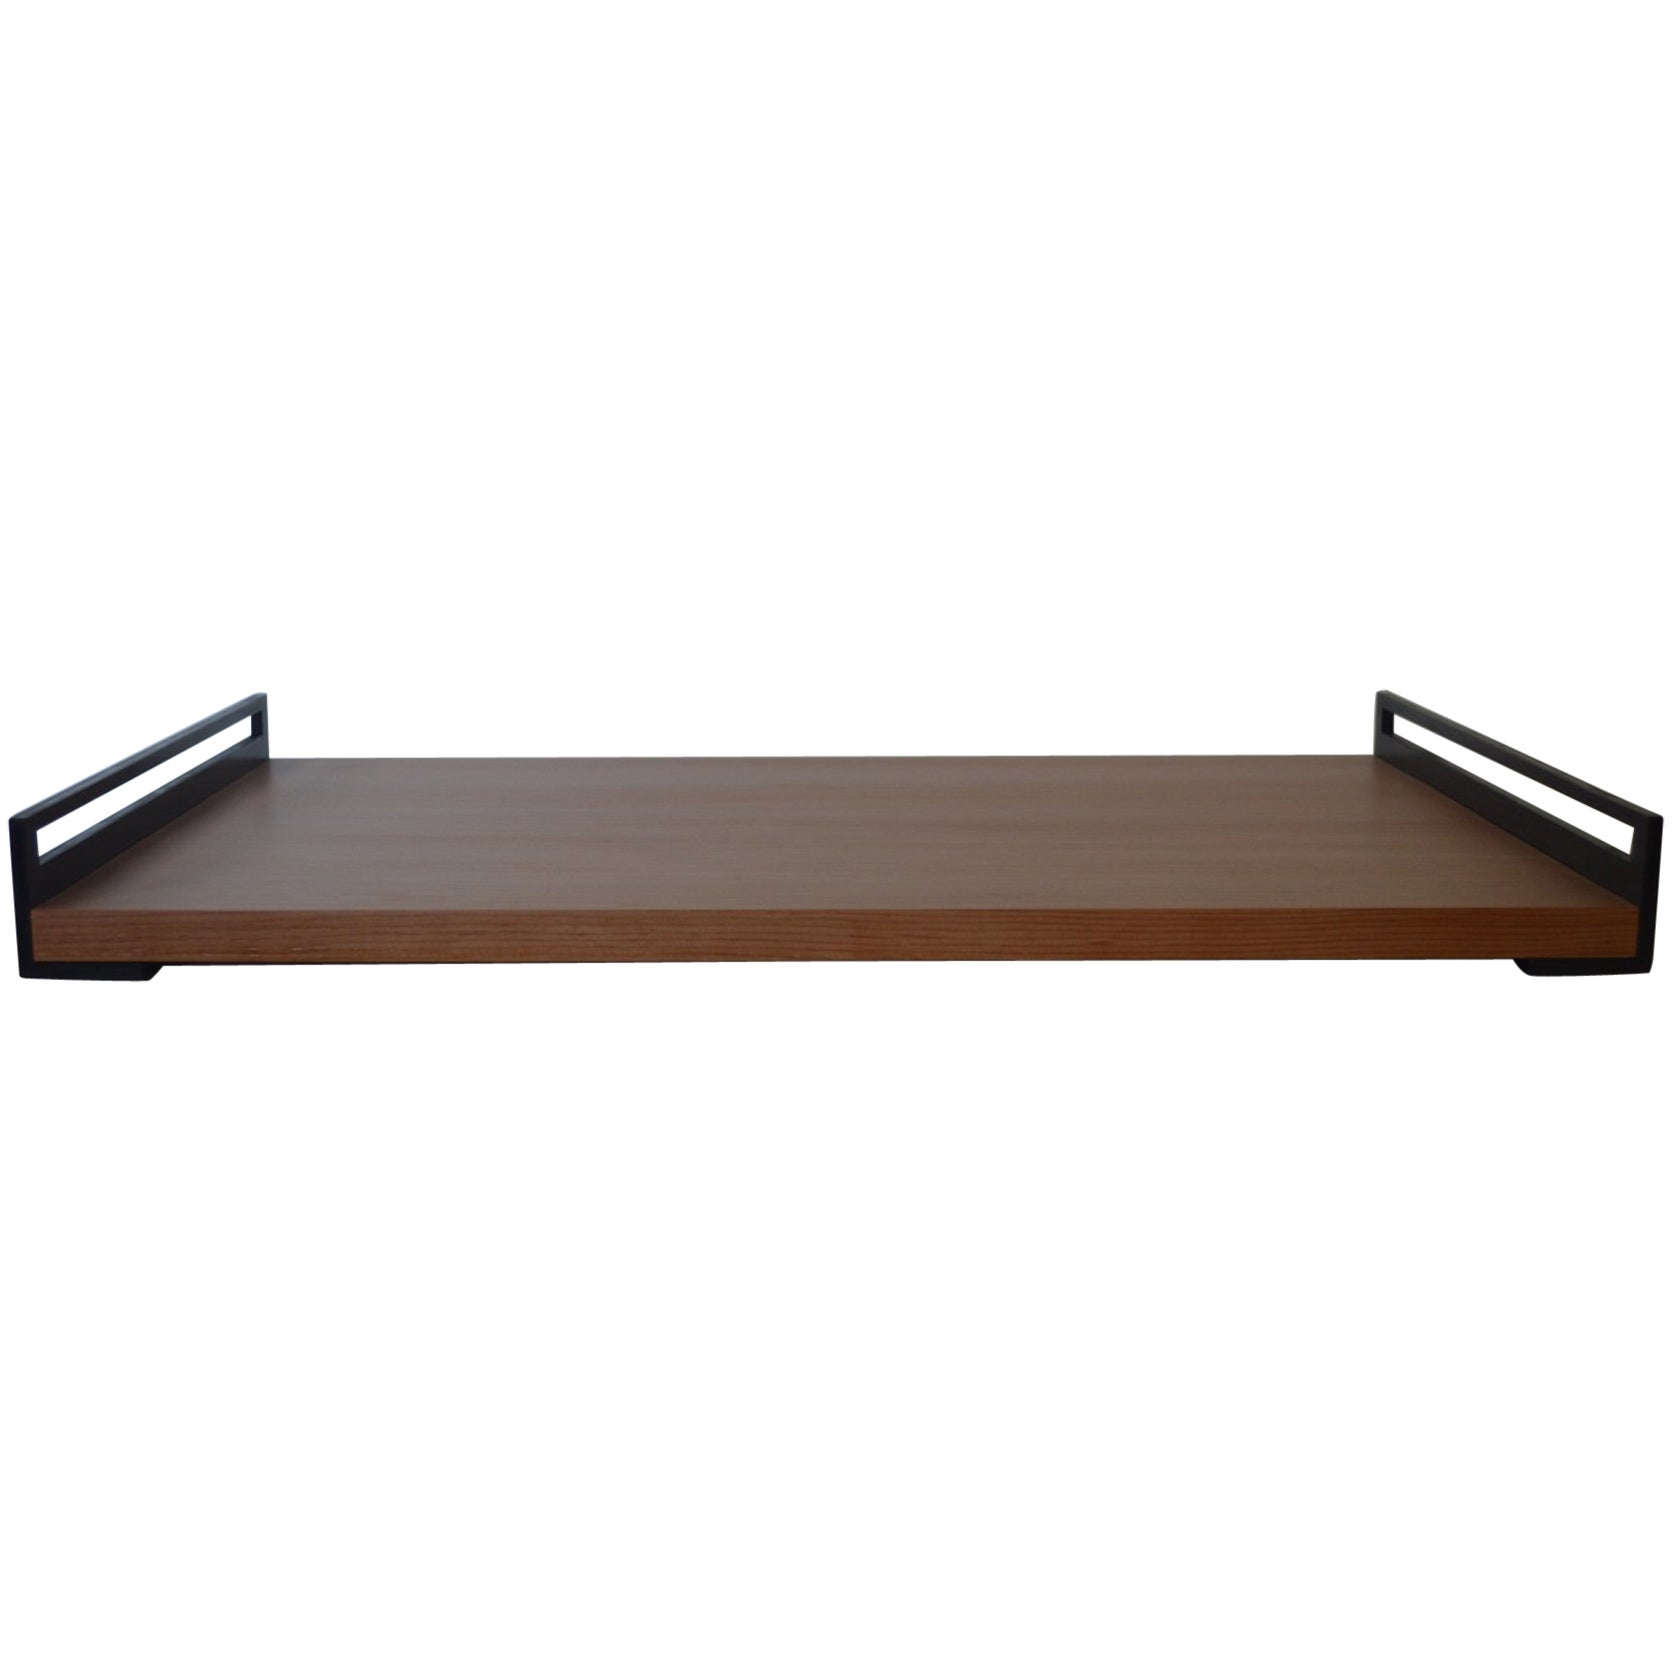 Contemporary Minimalist Blackened Steel and Wood Service Tray-IN STOCK